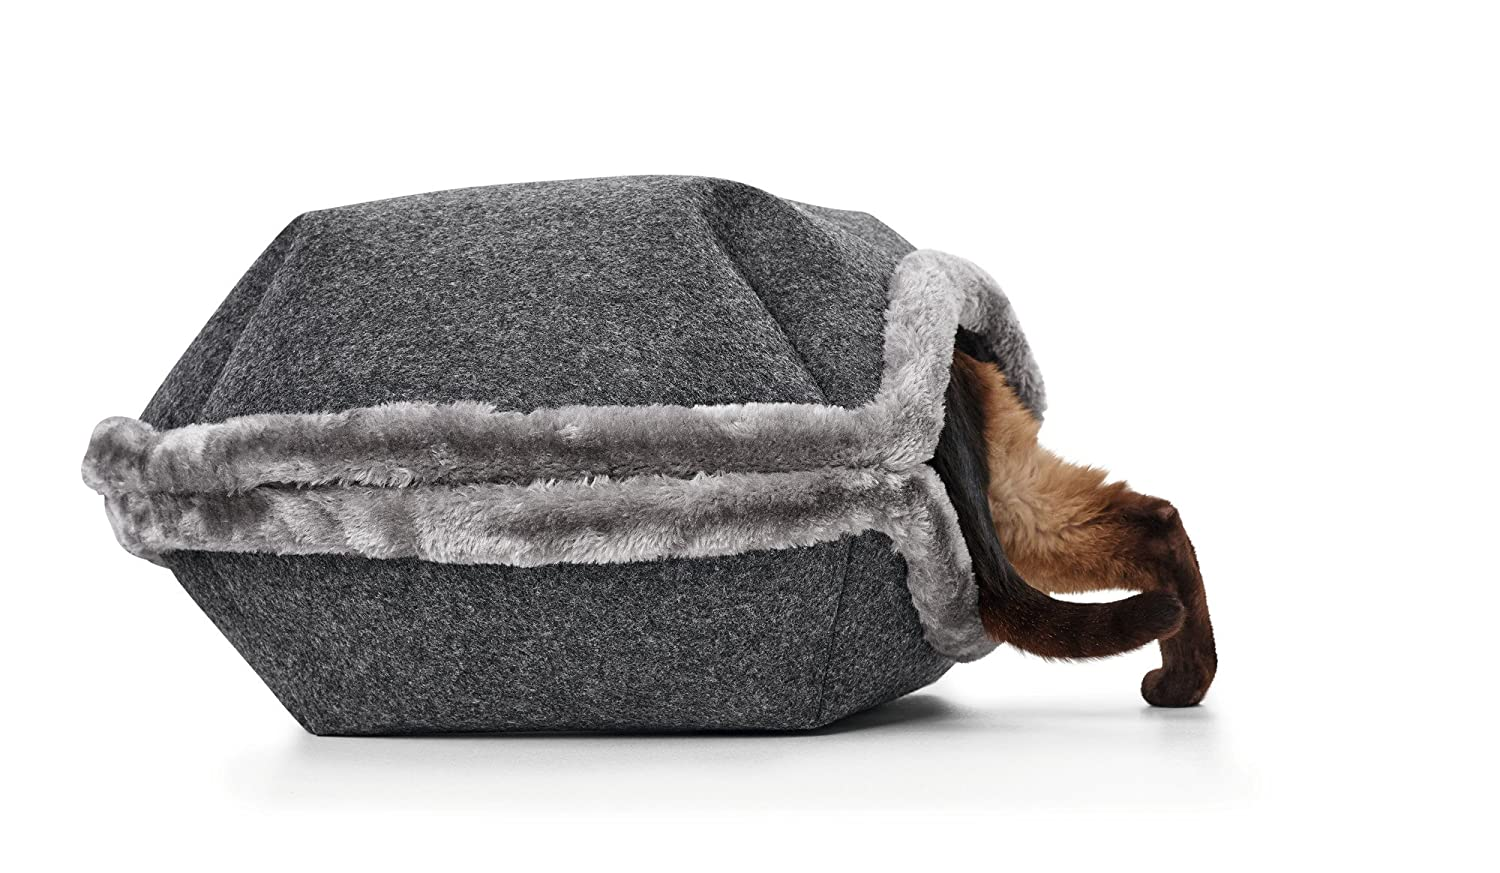 Hunter - Cama para Perros y Gatos de Lugano, Antracita, 55 cm: Amazon.es: Productos para mascotas